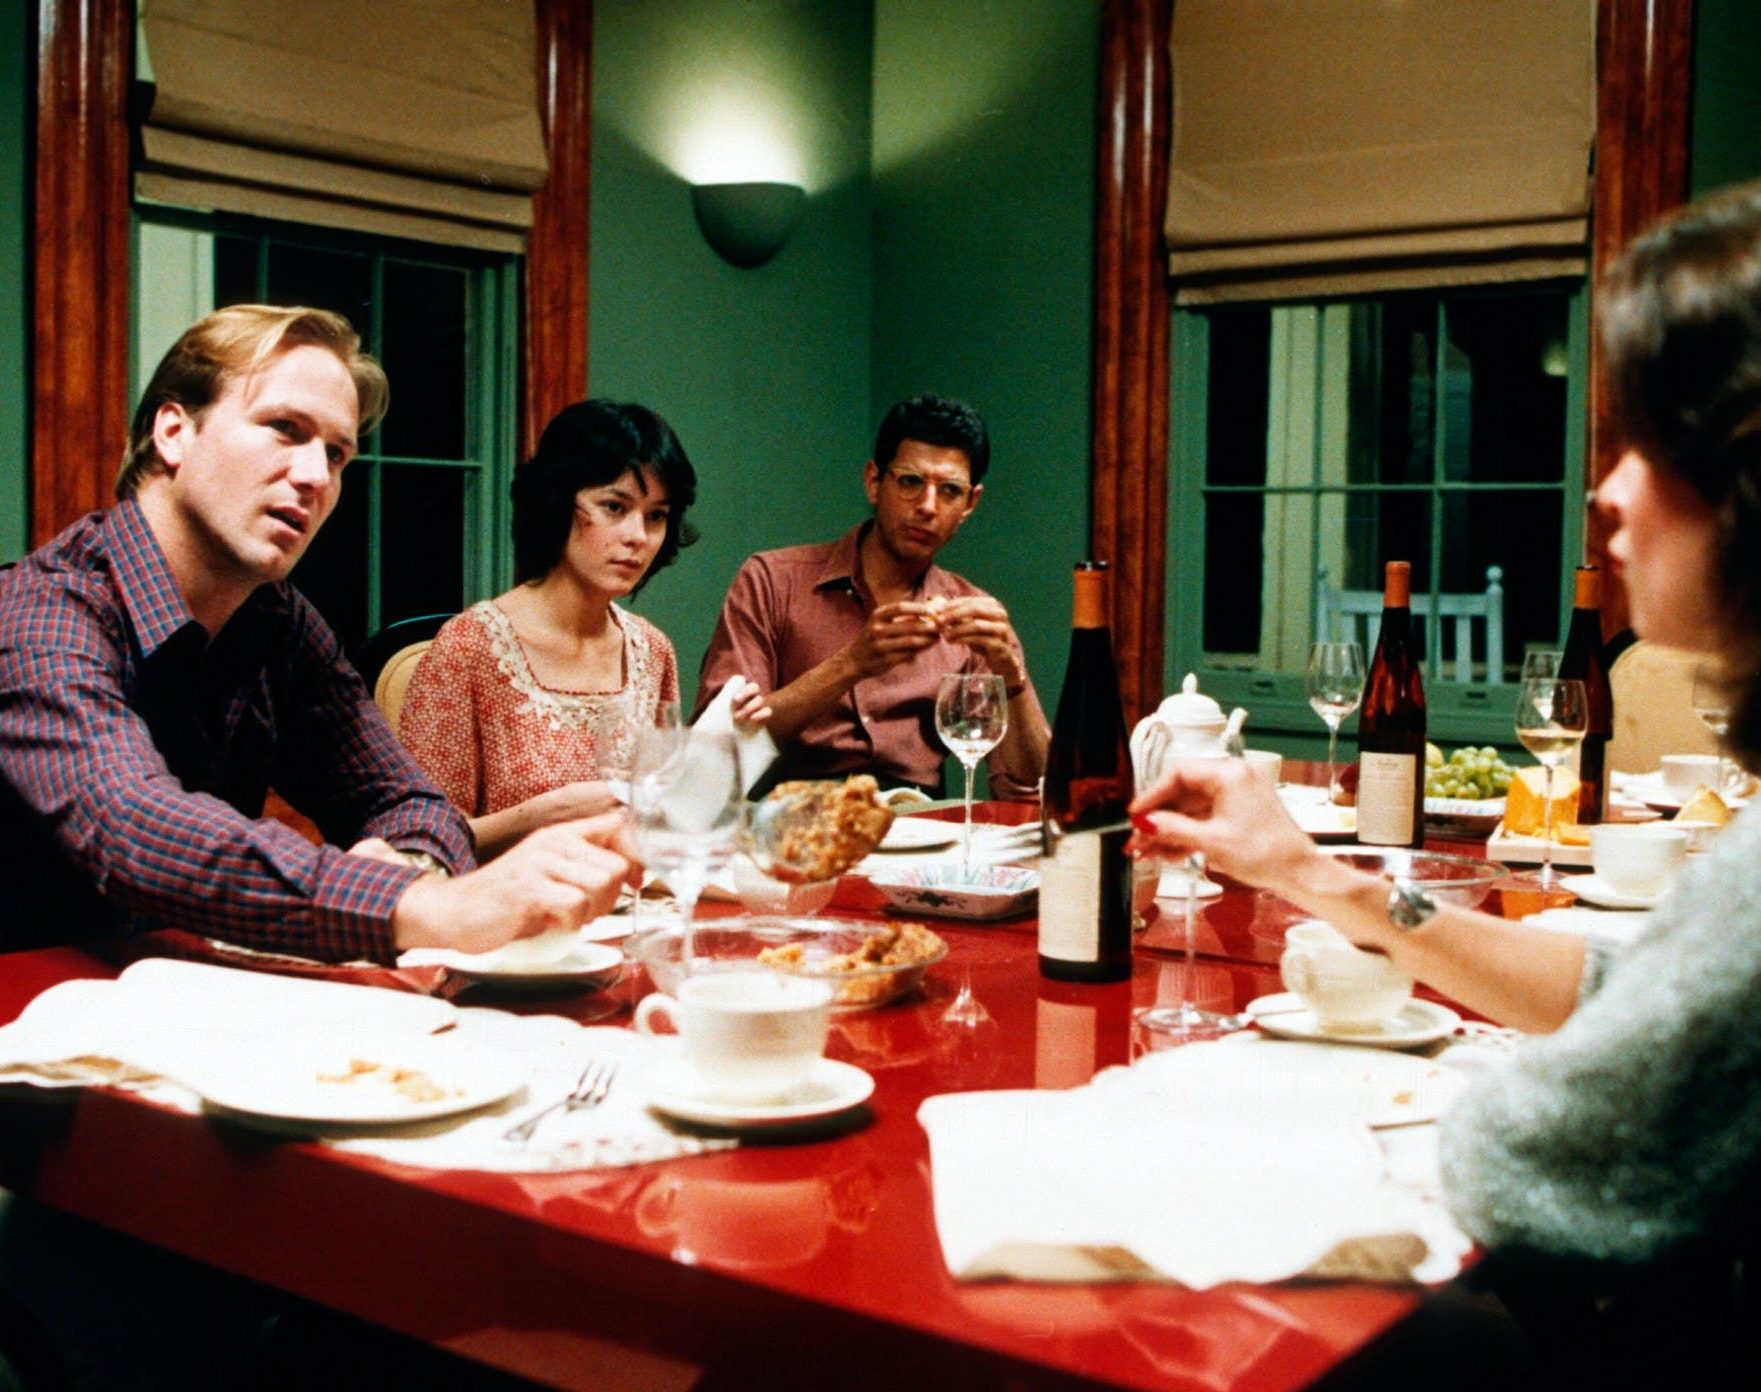 13 e1602068058663 20 Things You Might Not Have Realised About 1983's The Big Chill